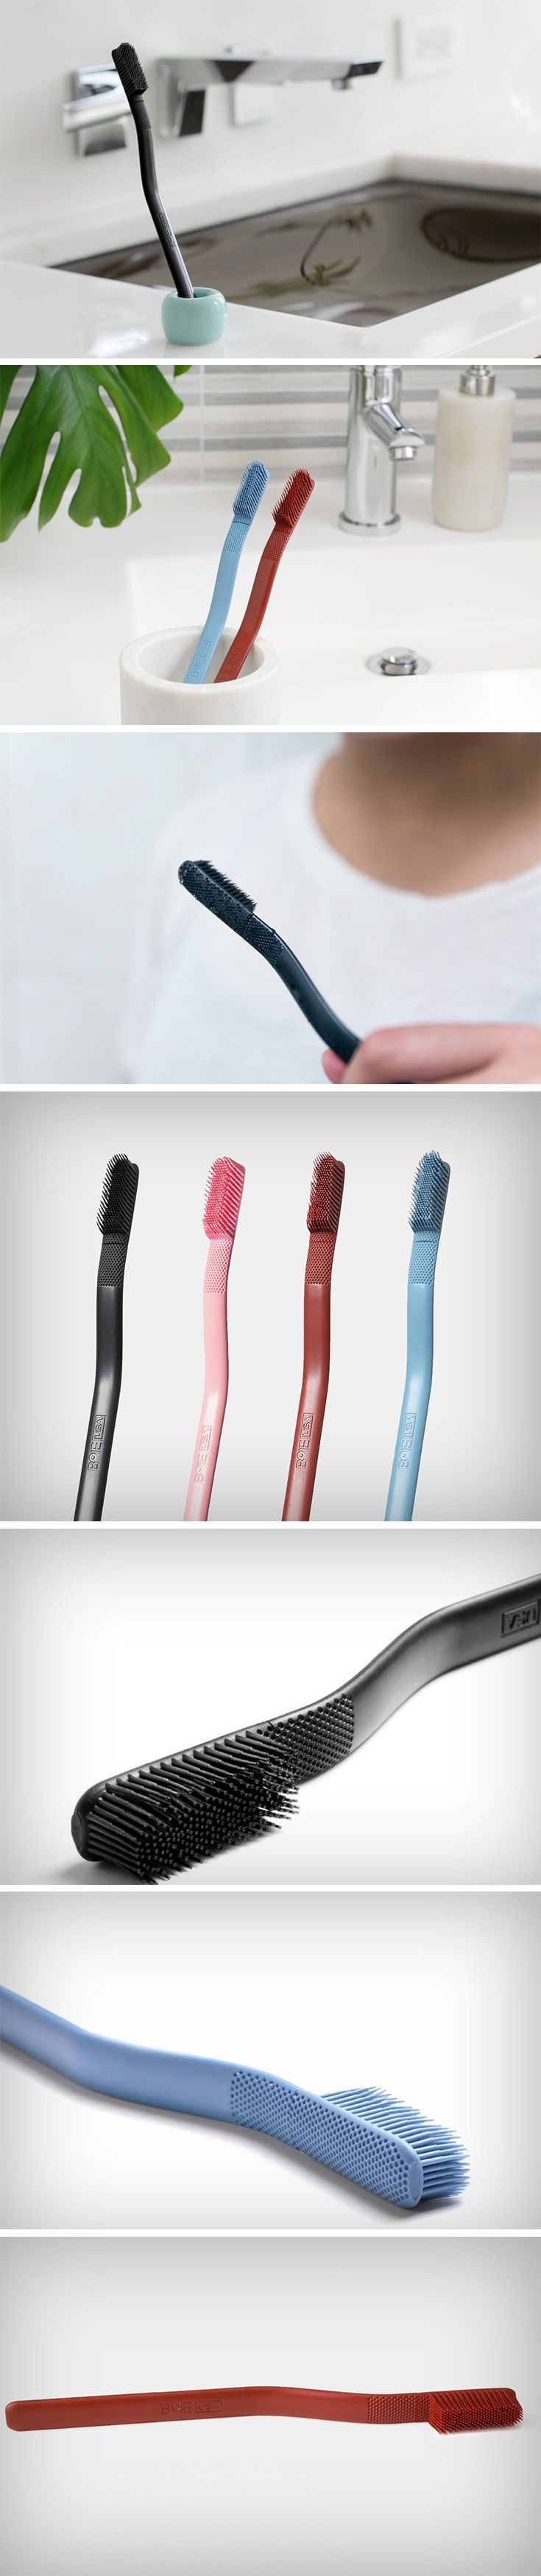 This toothbrush doesn't just look streamlined and great, it's designed to be the next step in oral hygiene. The Boie Brush comes with a single piece silicone head that has silicone bristles molded right into it! Silicone as a material has been the closest to human skin, so the bristles feel great against the teeth and don't scrub away the protective enamel layer, but instead gently and effectively cleanse your mouth.